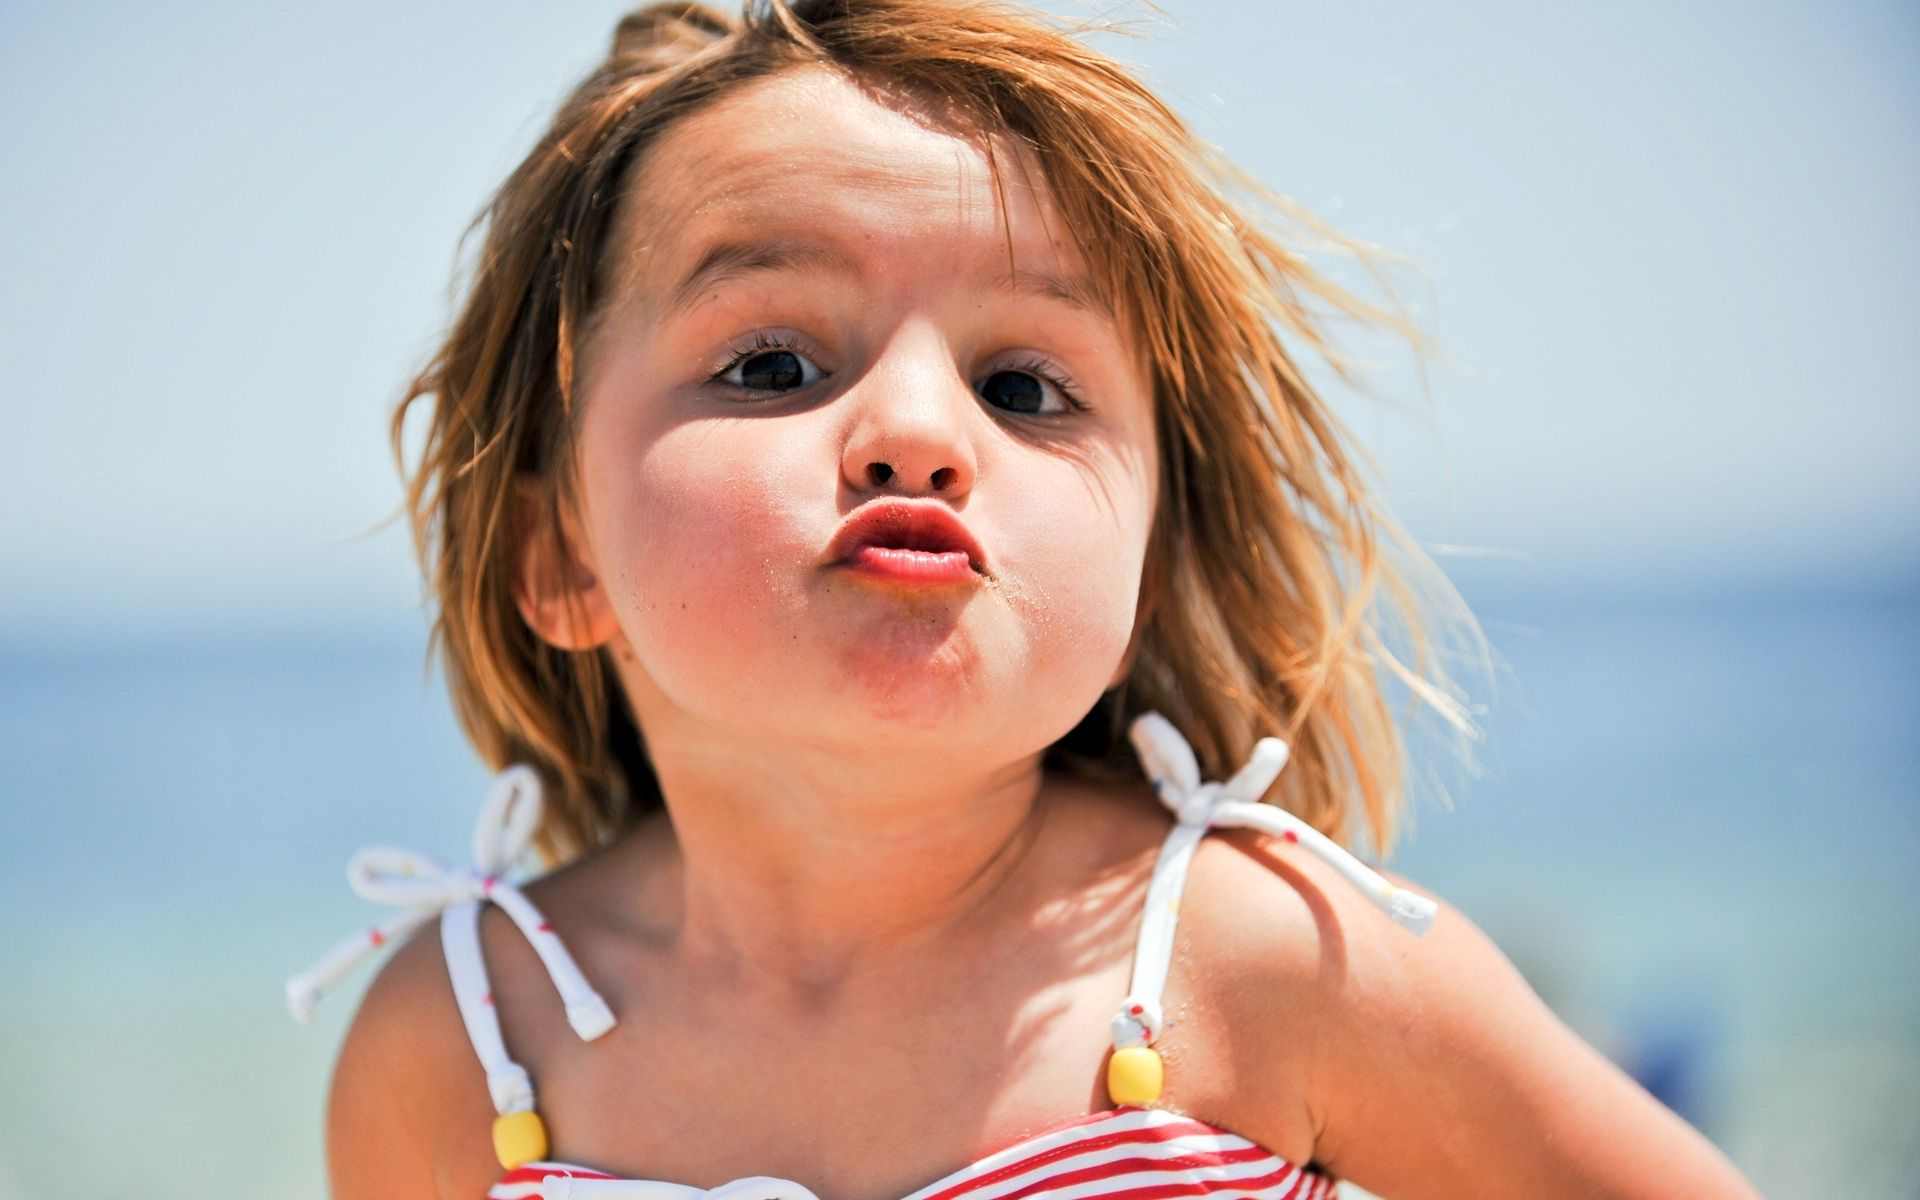 Wallpaper download baby girl - Undefined Cute Baby Girl Pic Wallpapers 34 Wallpapers Adorable Wallpapers